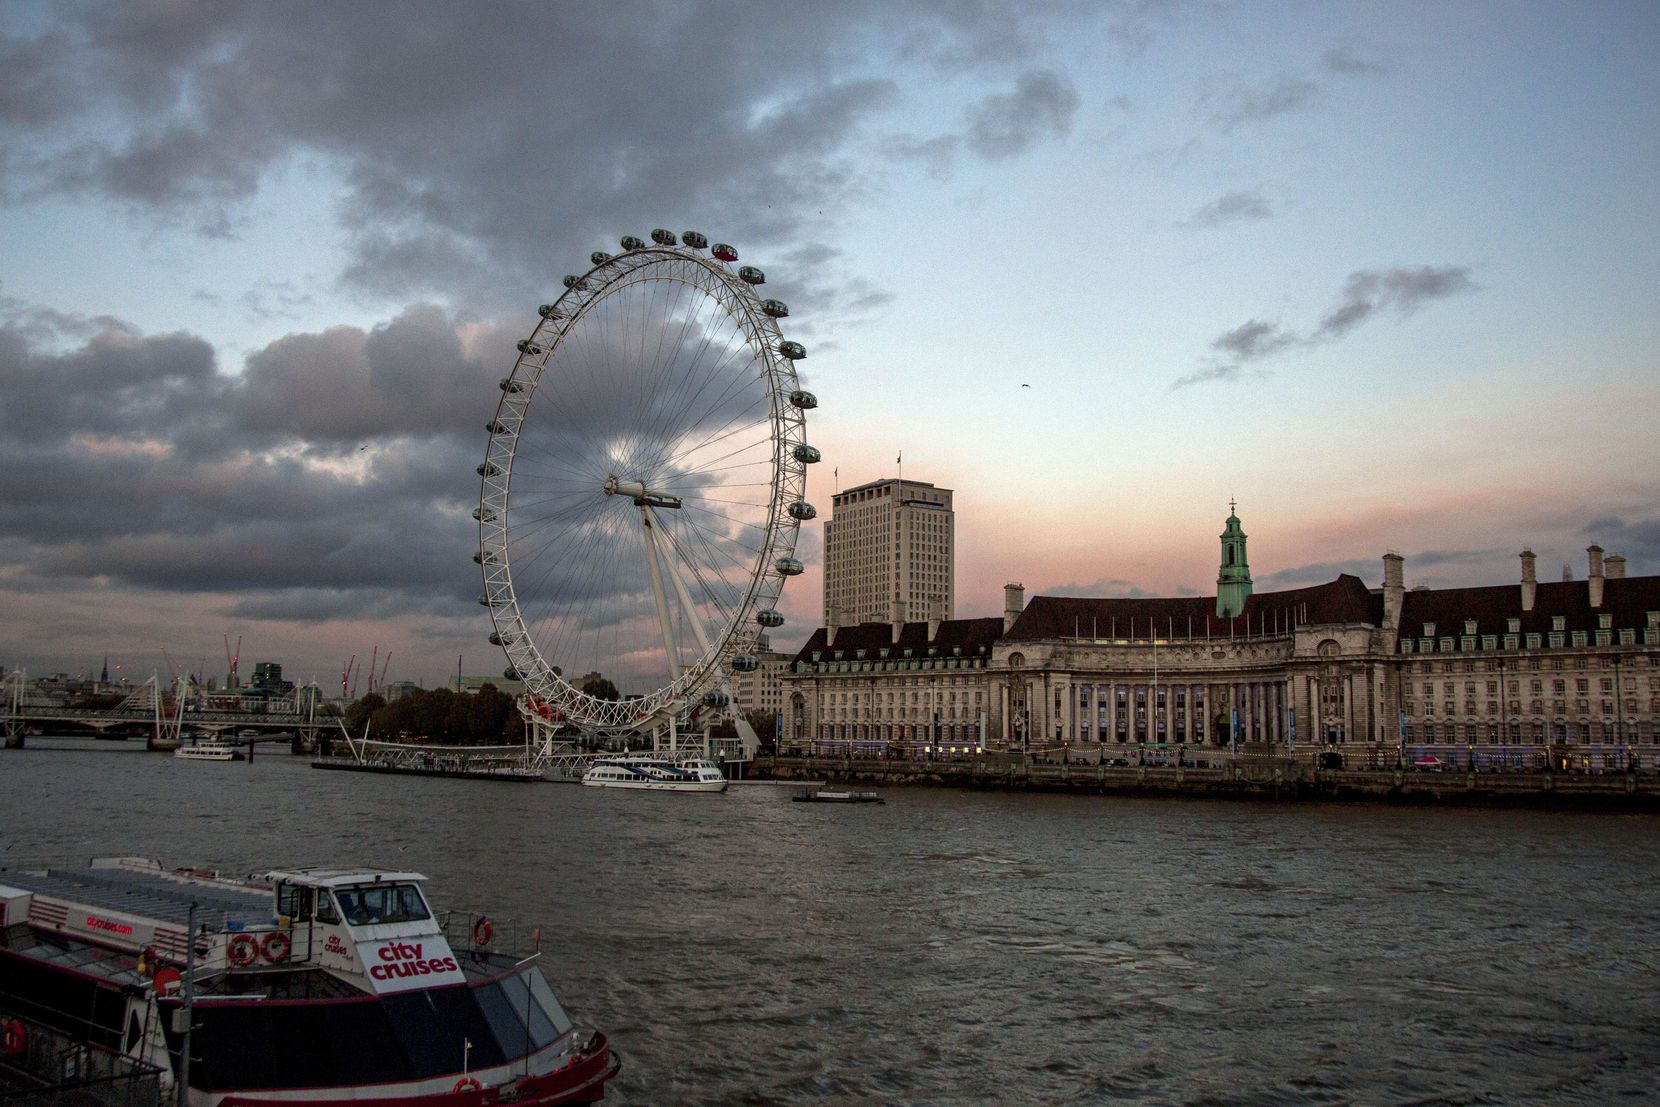 The proposed Dallas observation wheel would be bigger than the famous London Eye.